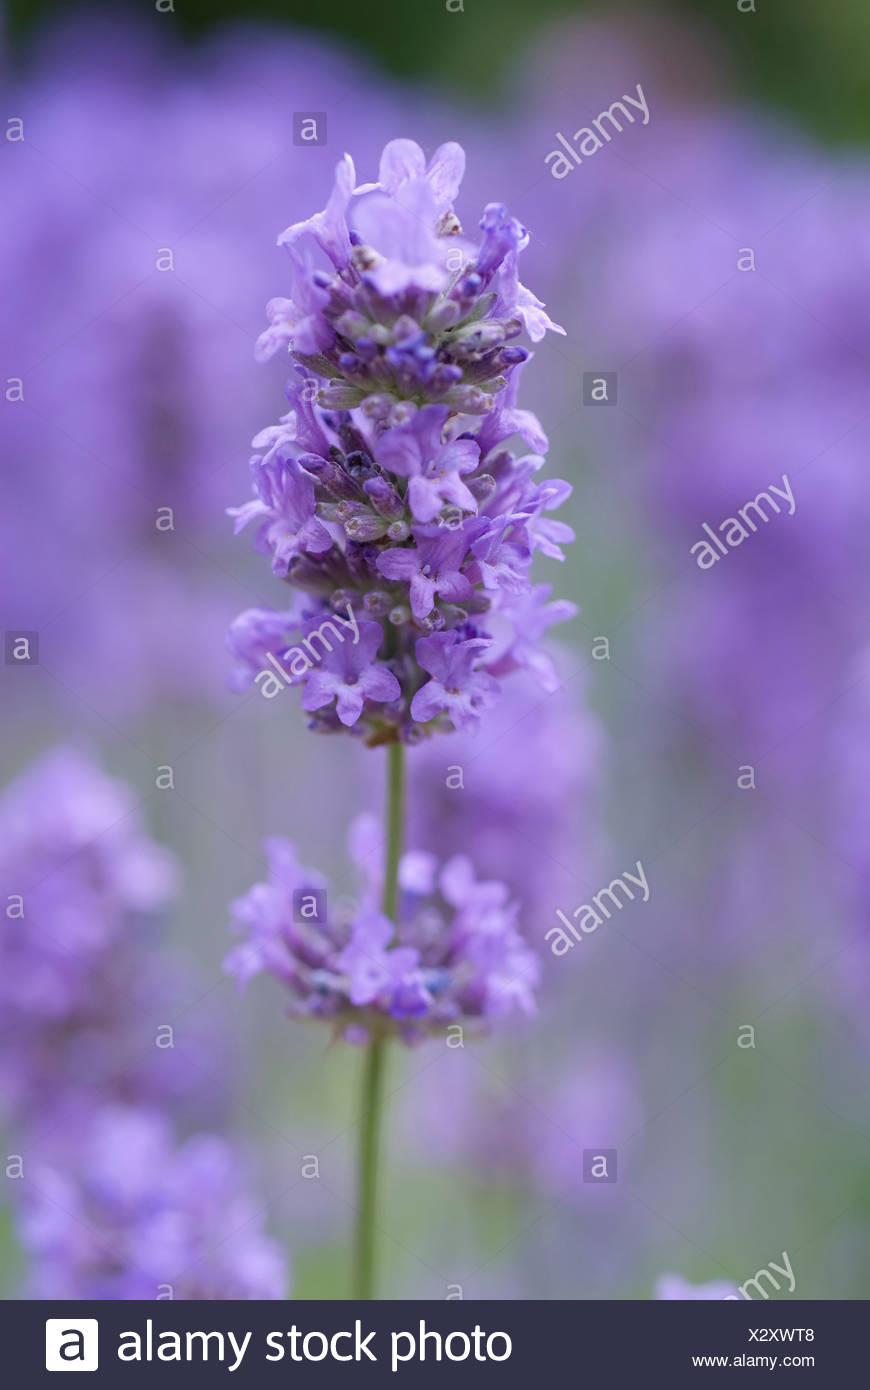 National Flower Of Portugal : national, flower, portugal, Lavandula, Angustifolia,, Lavender,, Single, Purple, Flower, Spike, Isolated, Shallow, Focus, Against, Other, Lavender, Stock, Photo, Alamy